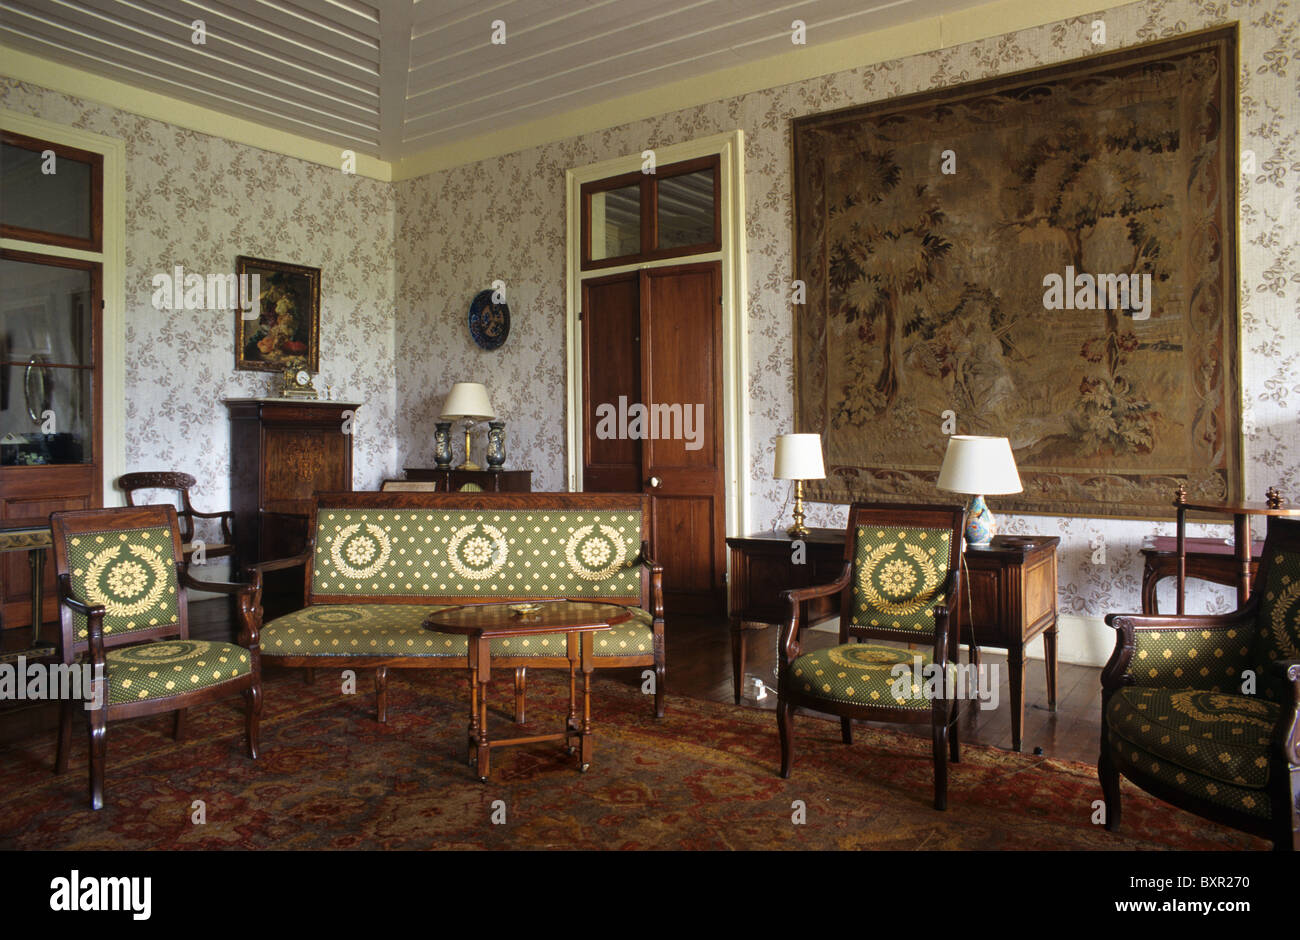 Salon Style Colonial Salon Living Room Or Interior Of Riche En Eau Colonial